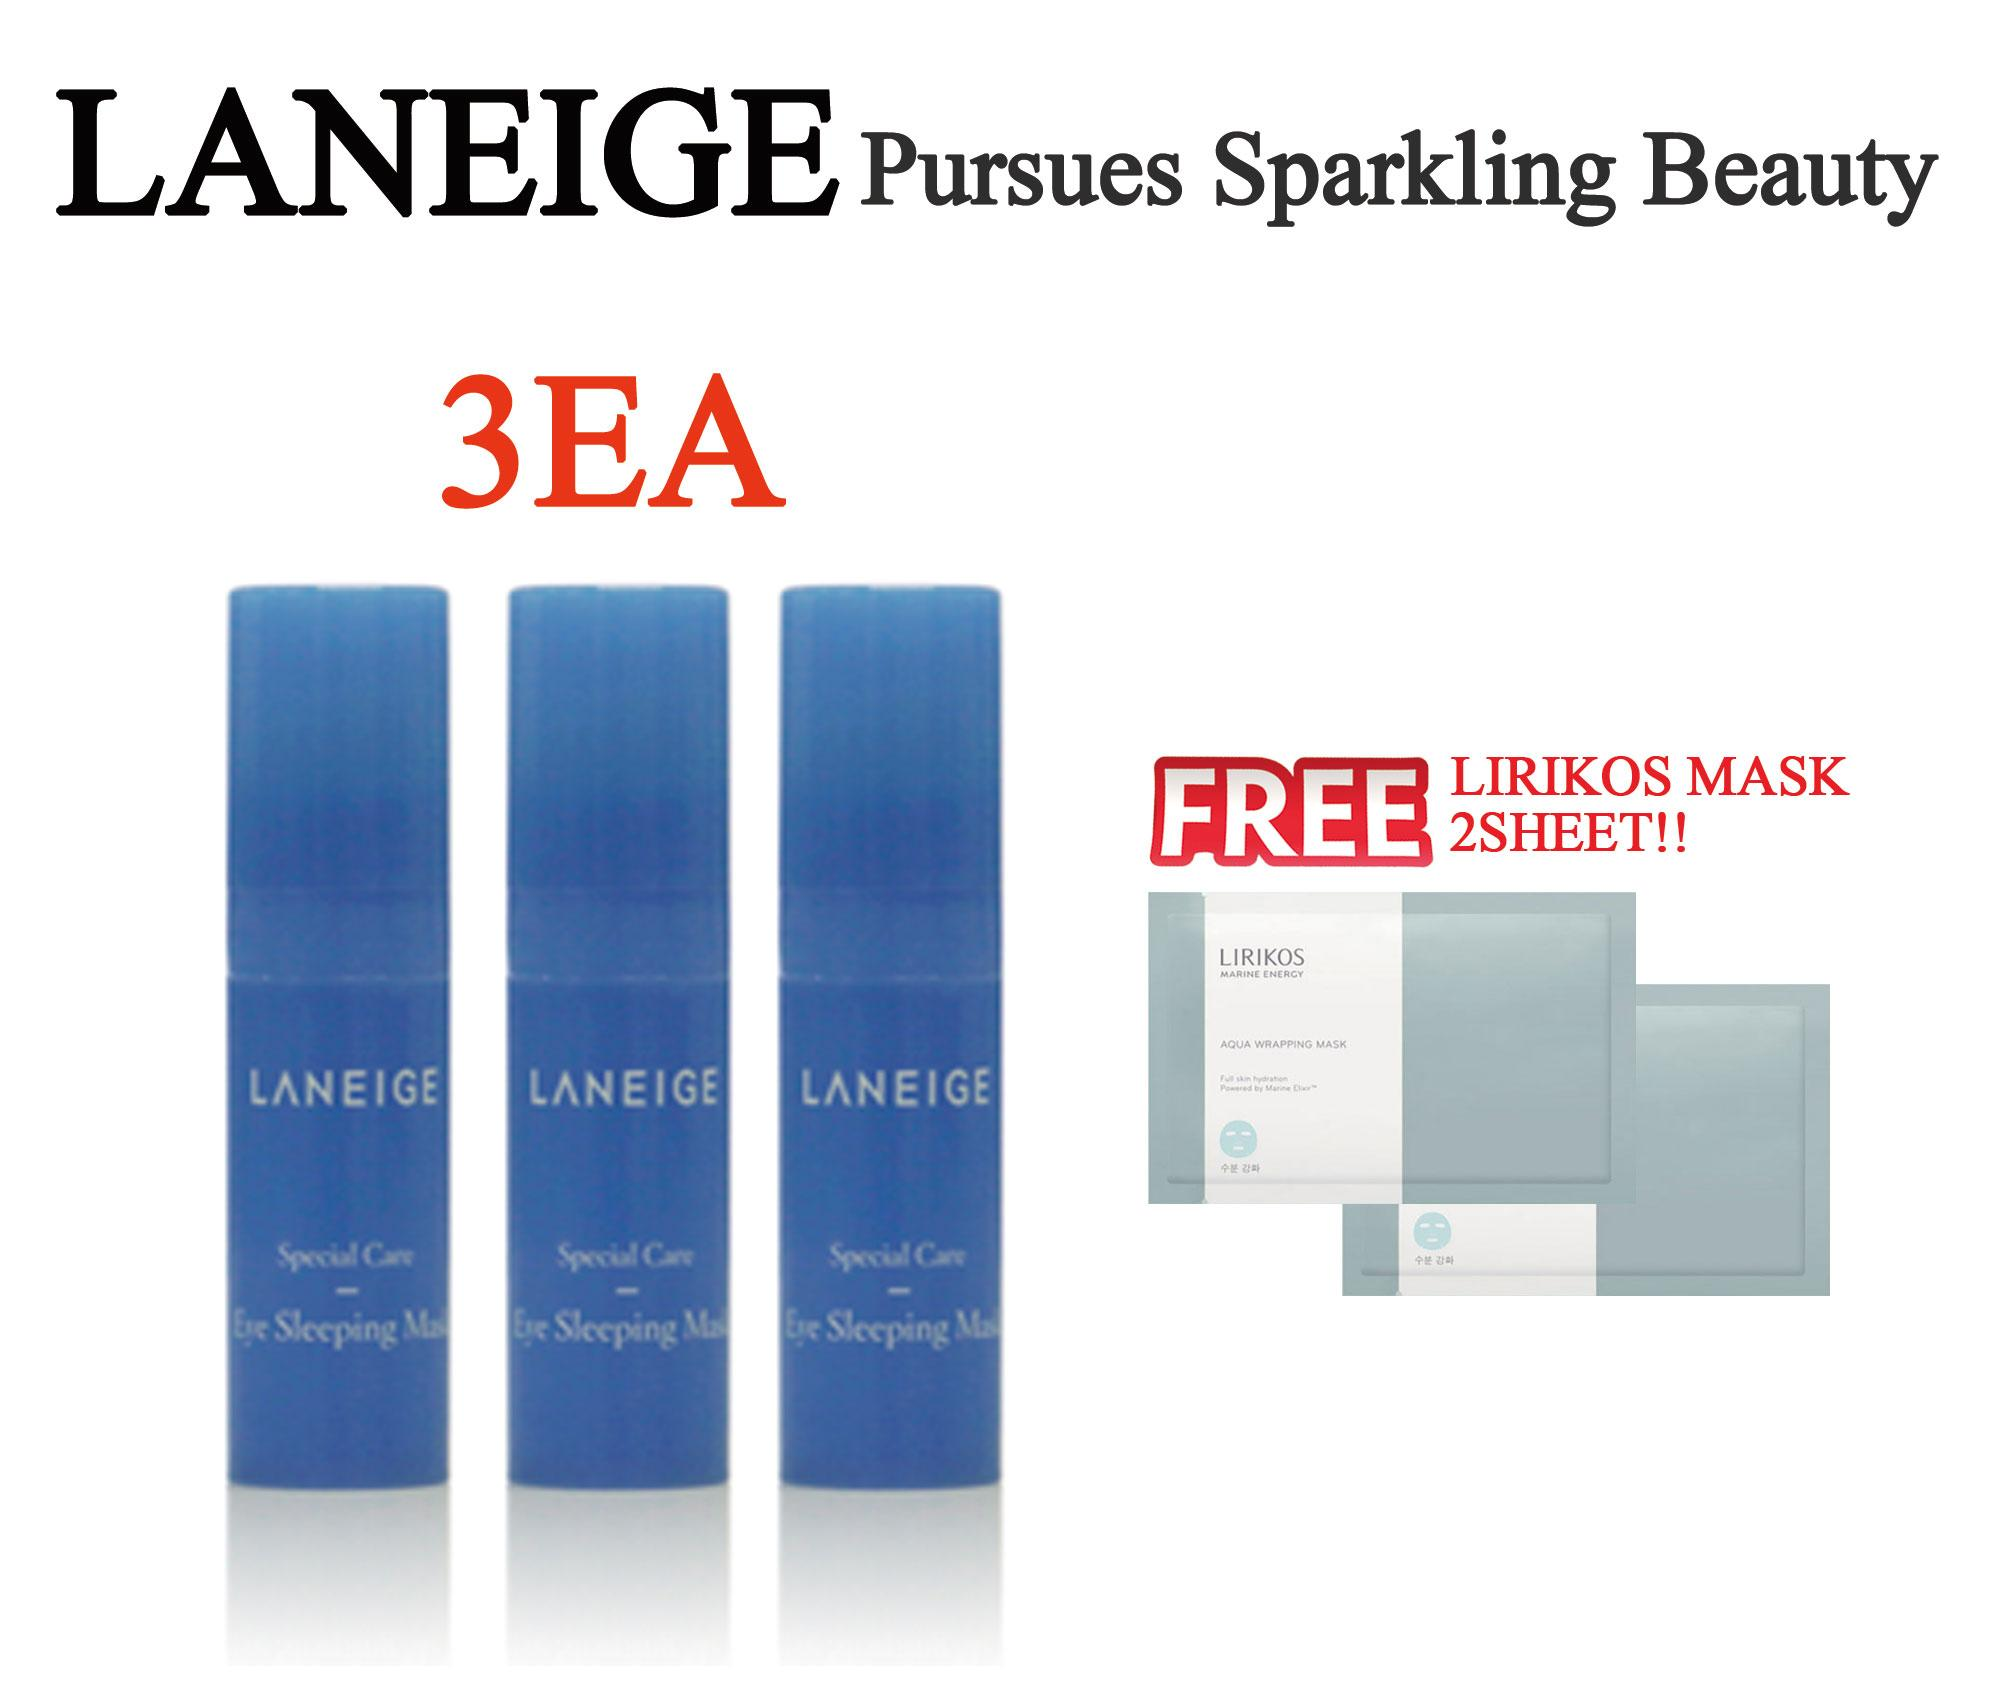 Laneige Philippines Face Products For Sale Prices Eye Sleeping Mask Mask5ml 1